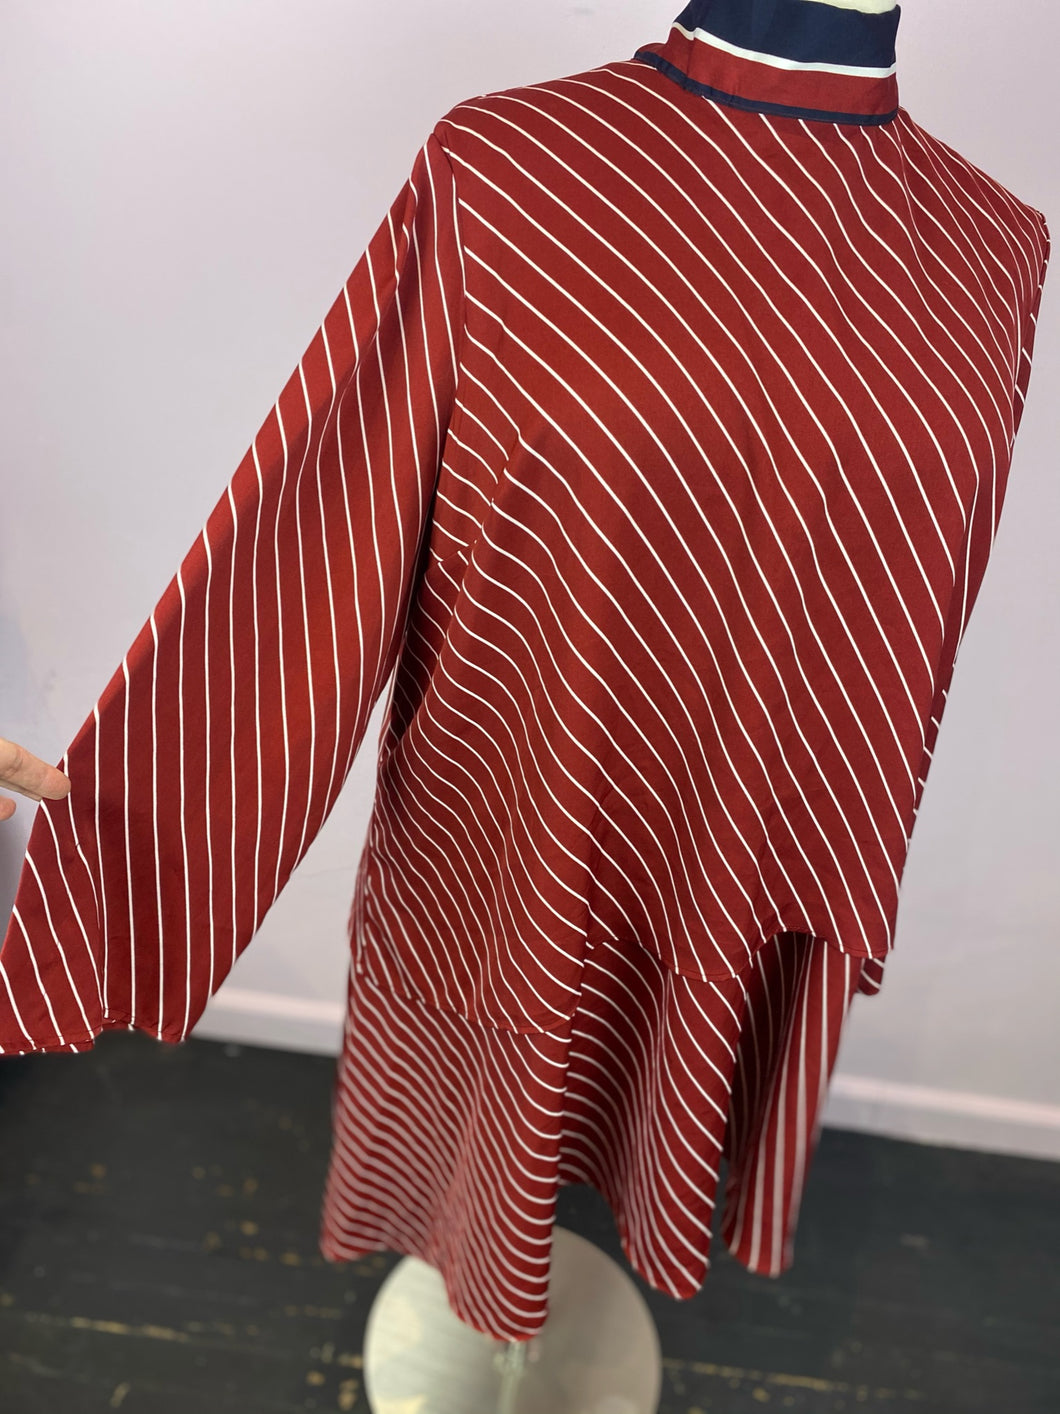 Red and White Diagonal Striped Shift Dress with Navy and Red Ascot Detail by Who What Wear, Size 3X